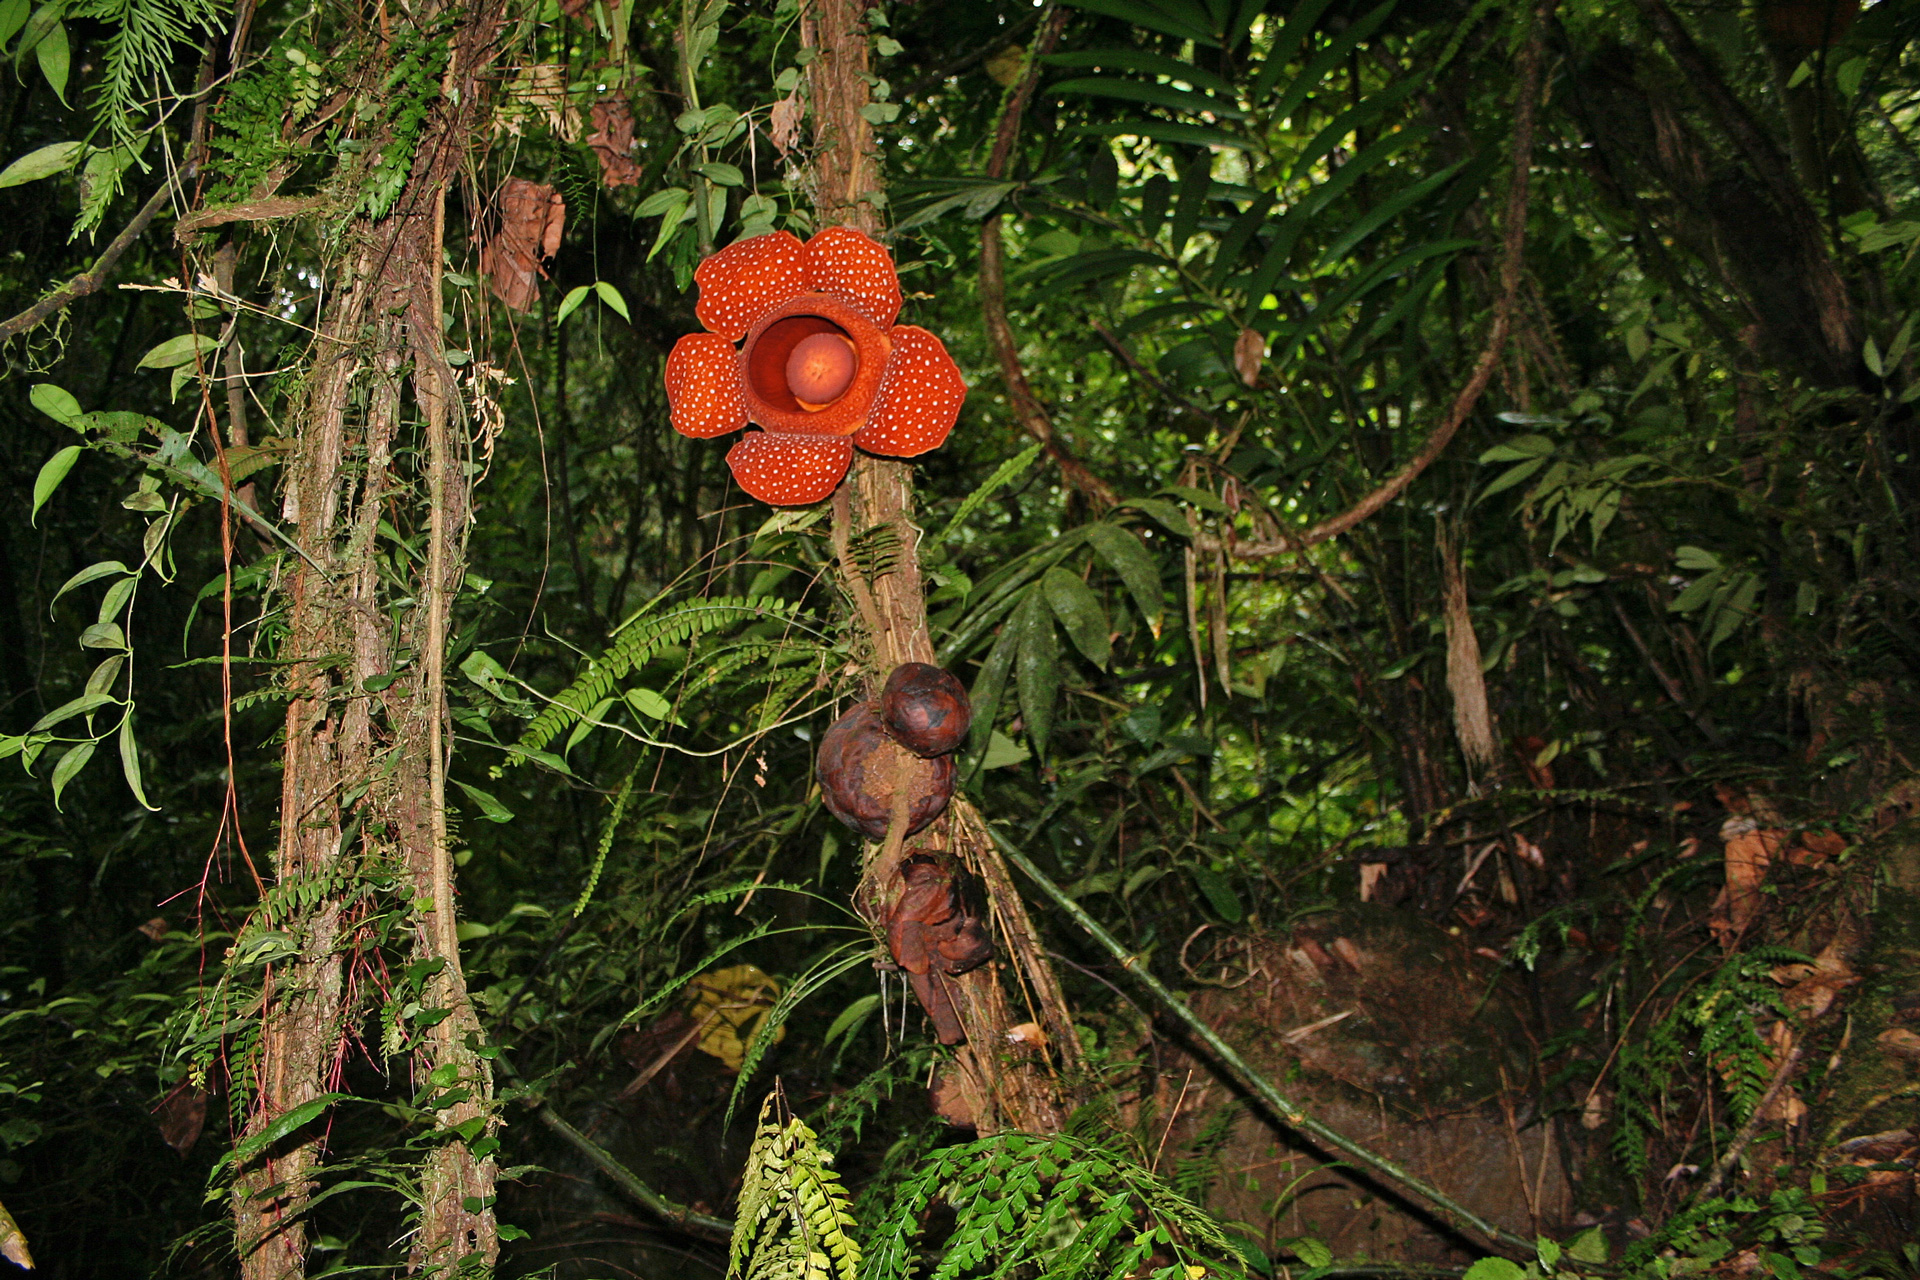 Flowers and flower buds of Rafflesia leonardi emerging from a host vine